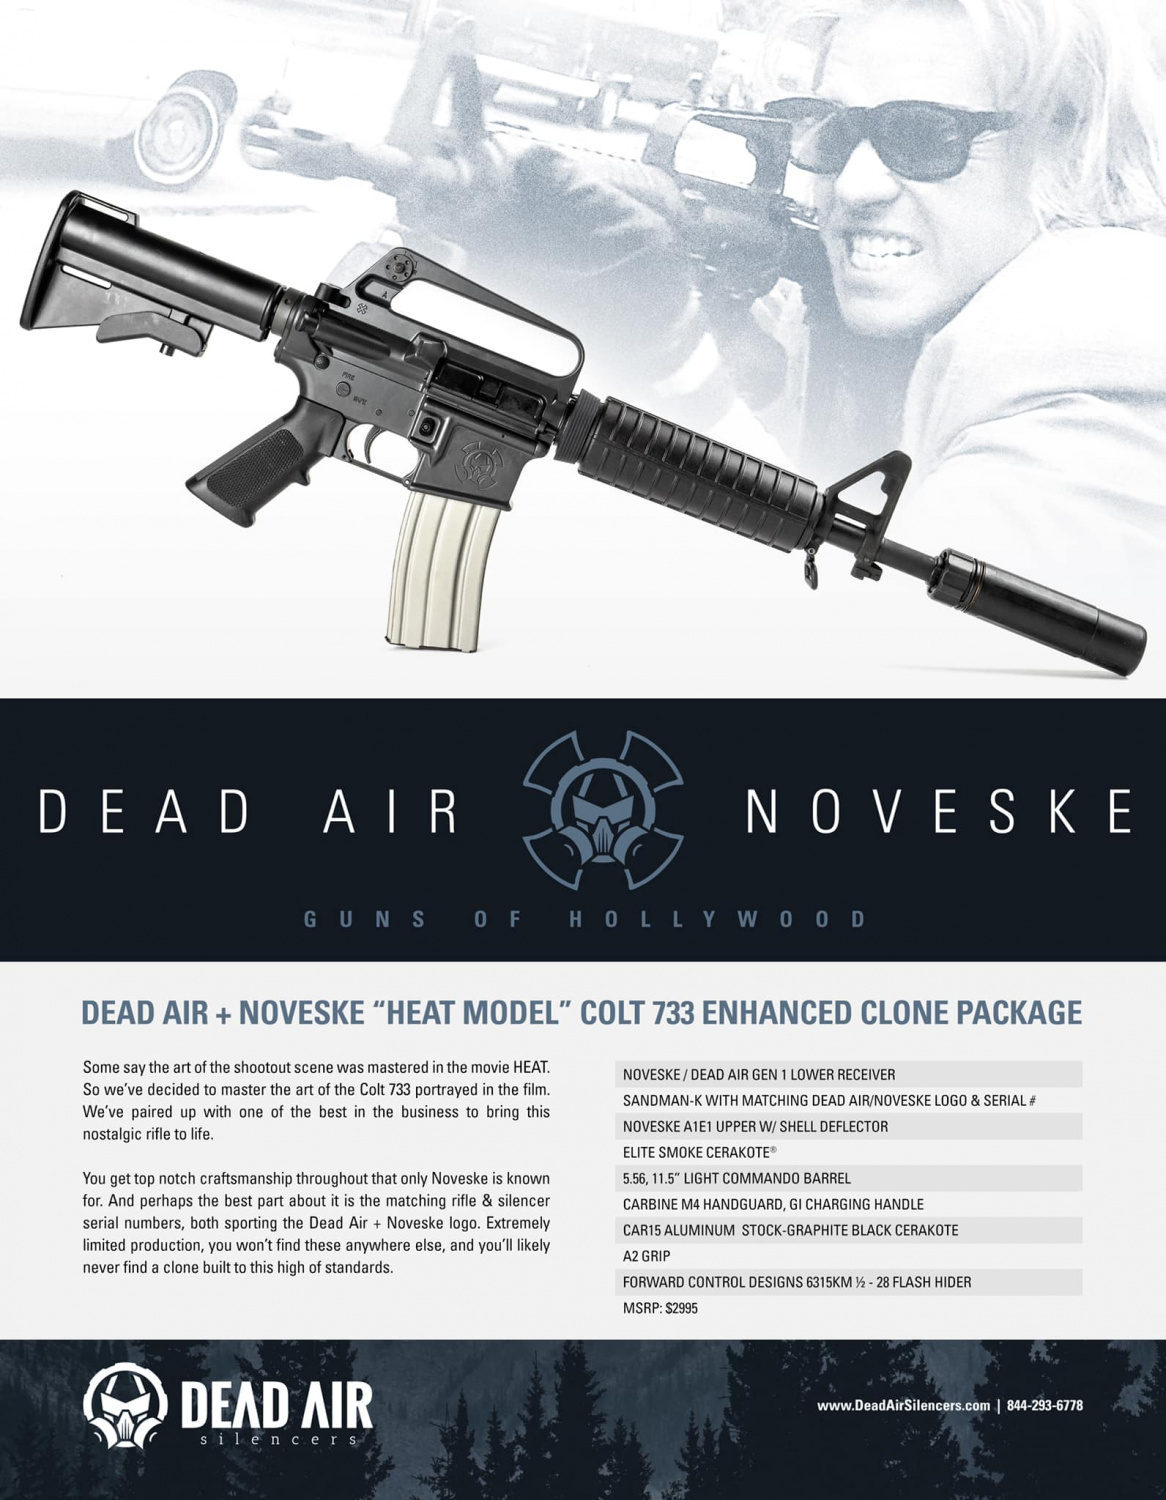 The leaked product sheet from Dead Air and Noveske